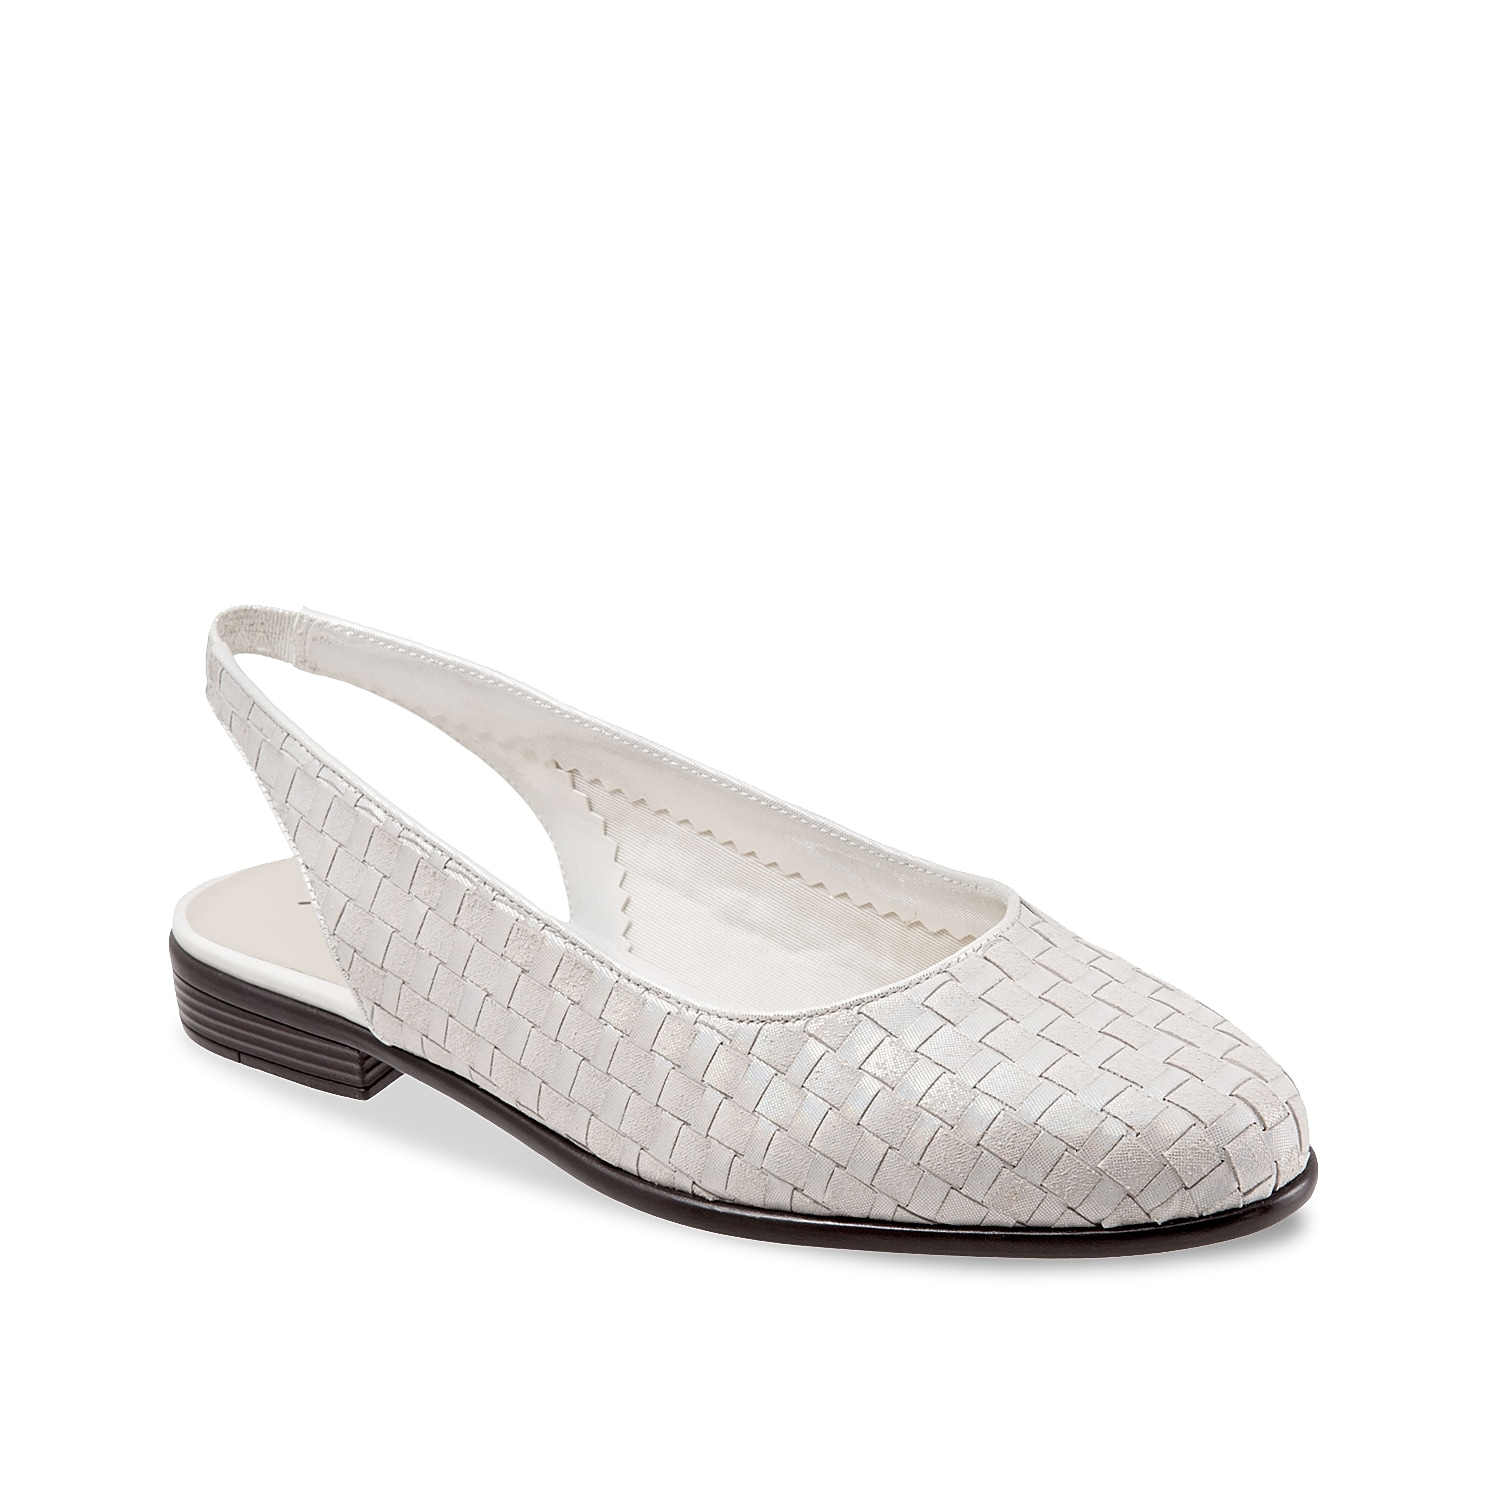 Infuse an element of fun to your style with the Lucy flat from Trotters. Featuring a slingback silhouette twisted in an eye-catching bucket weave texture, this flat will bring out the fashionista in you.